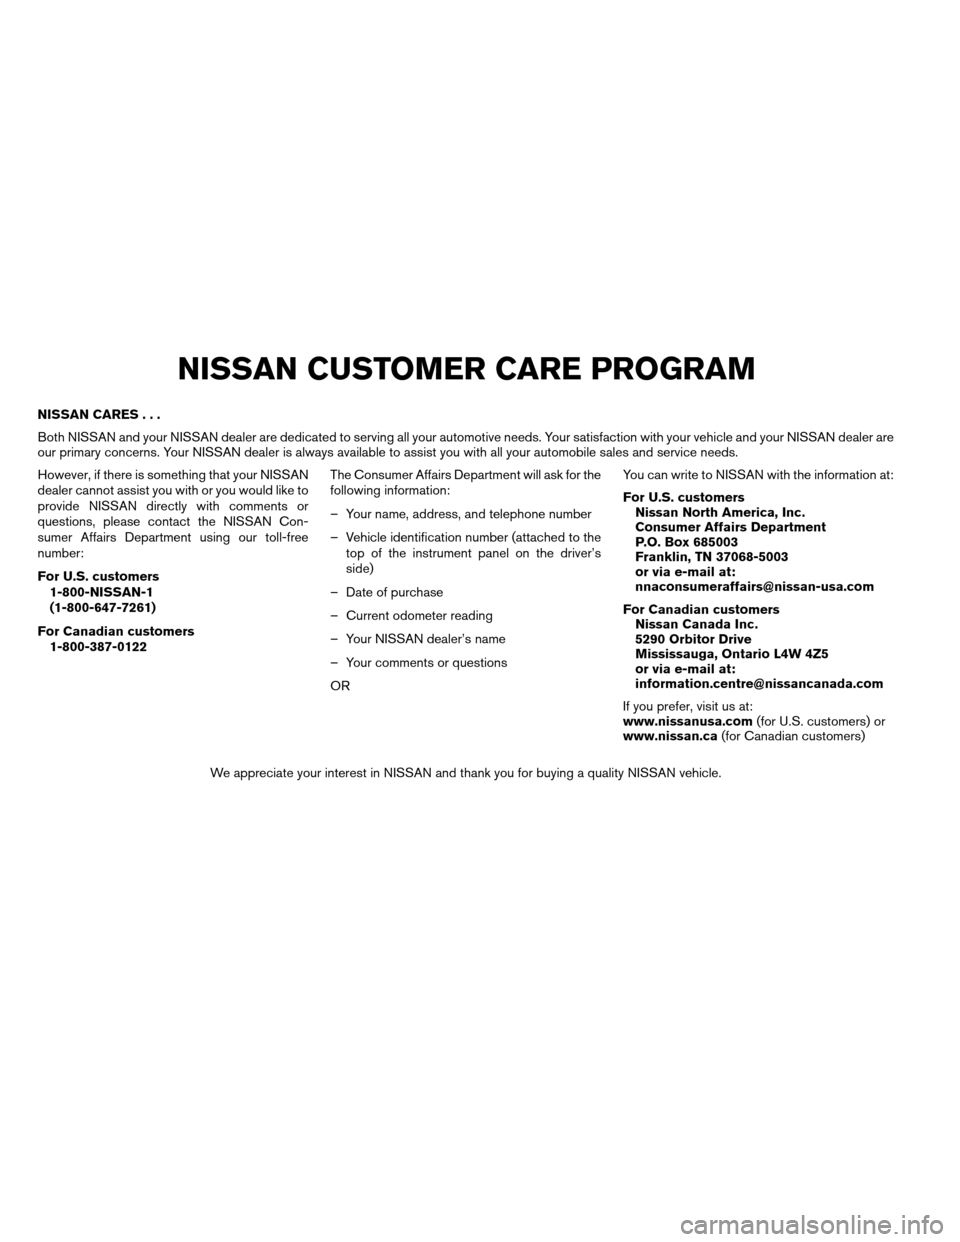 NISSAN ALTIMA COUPE 2013 D32 / 4.G Owners Manual NISSAN CARES... Both NISSAN and your NISSAN dealer are dedicated to serving all your automotive needs. Your satisfaction with your vehicle and your NISSAN dealer are our primary concerns. Your NISSAN